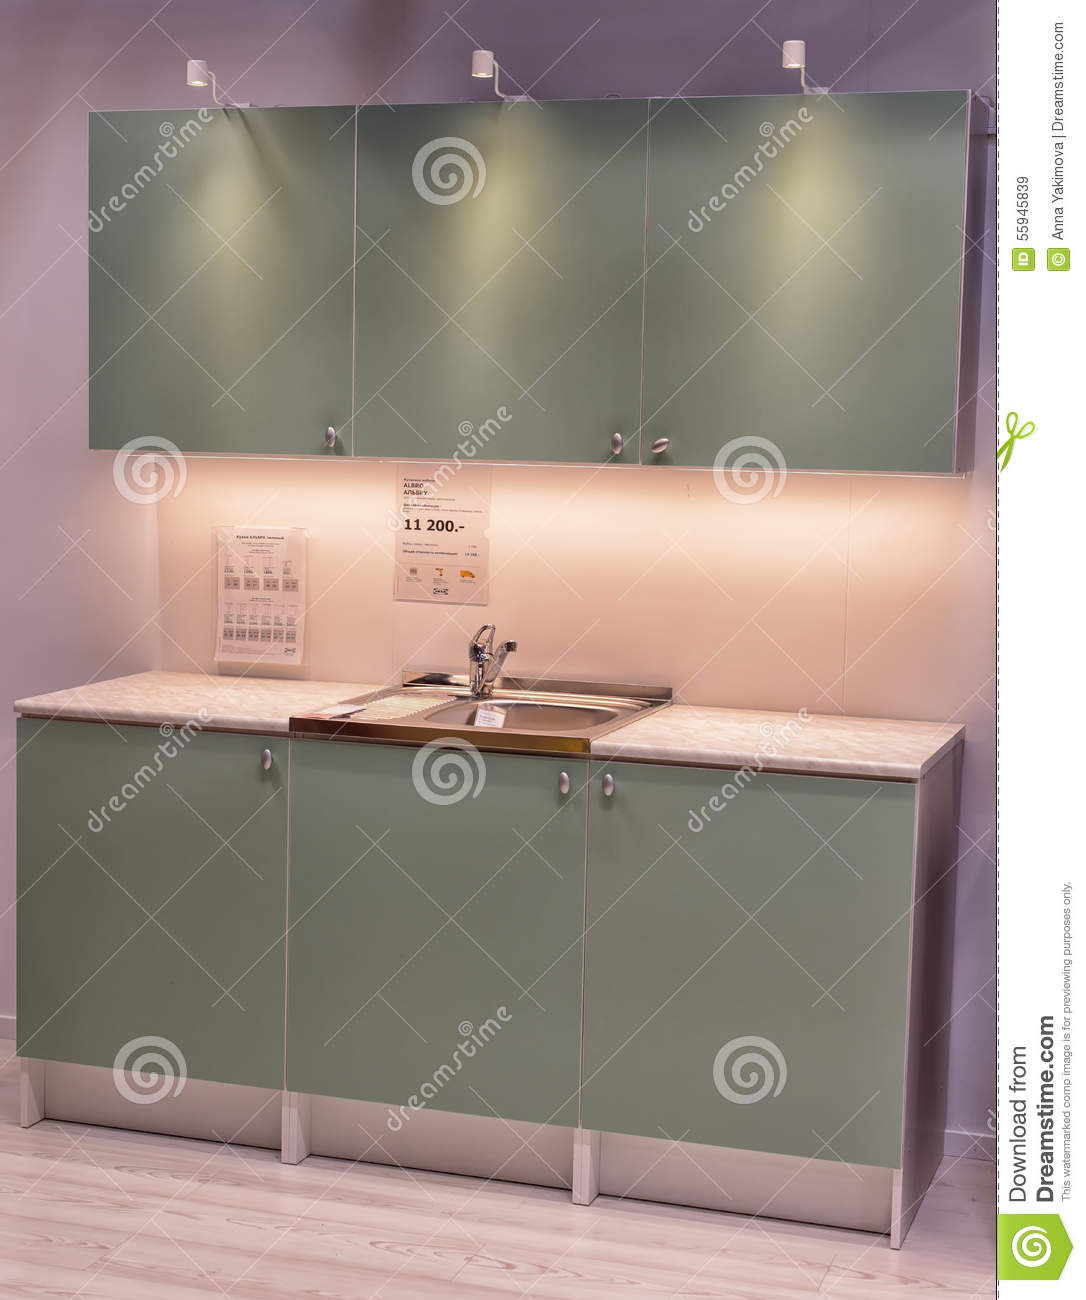 Ikea Showroom Related Keywords: Kitchen In Furniture Store Ikea Editorial Image